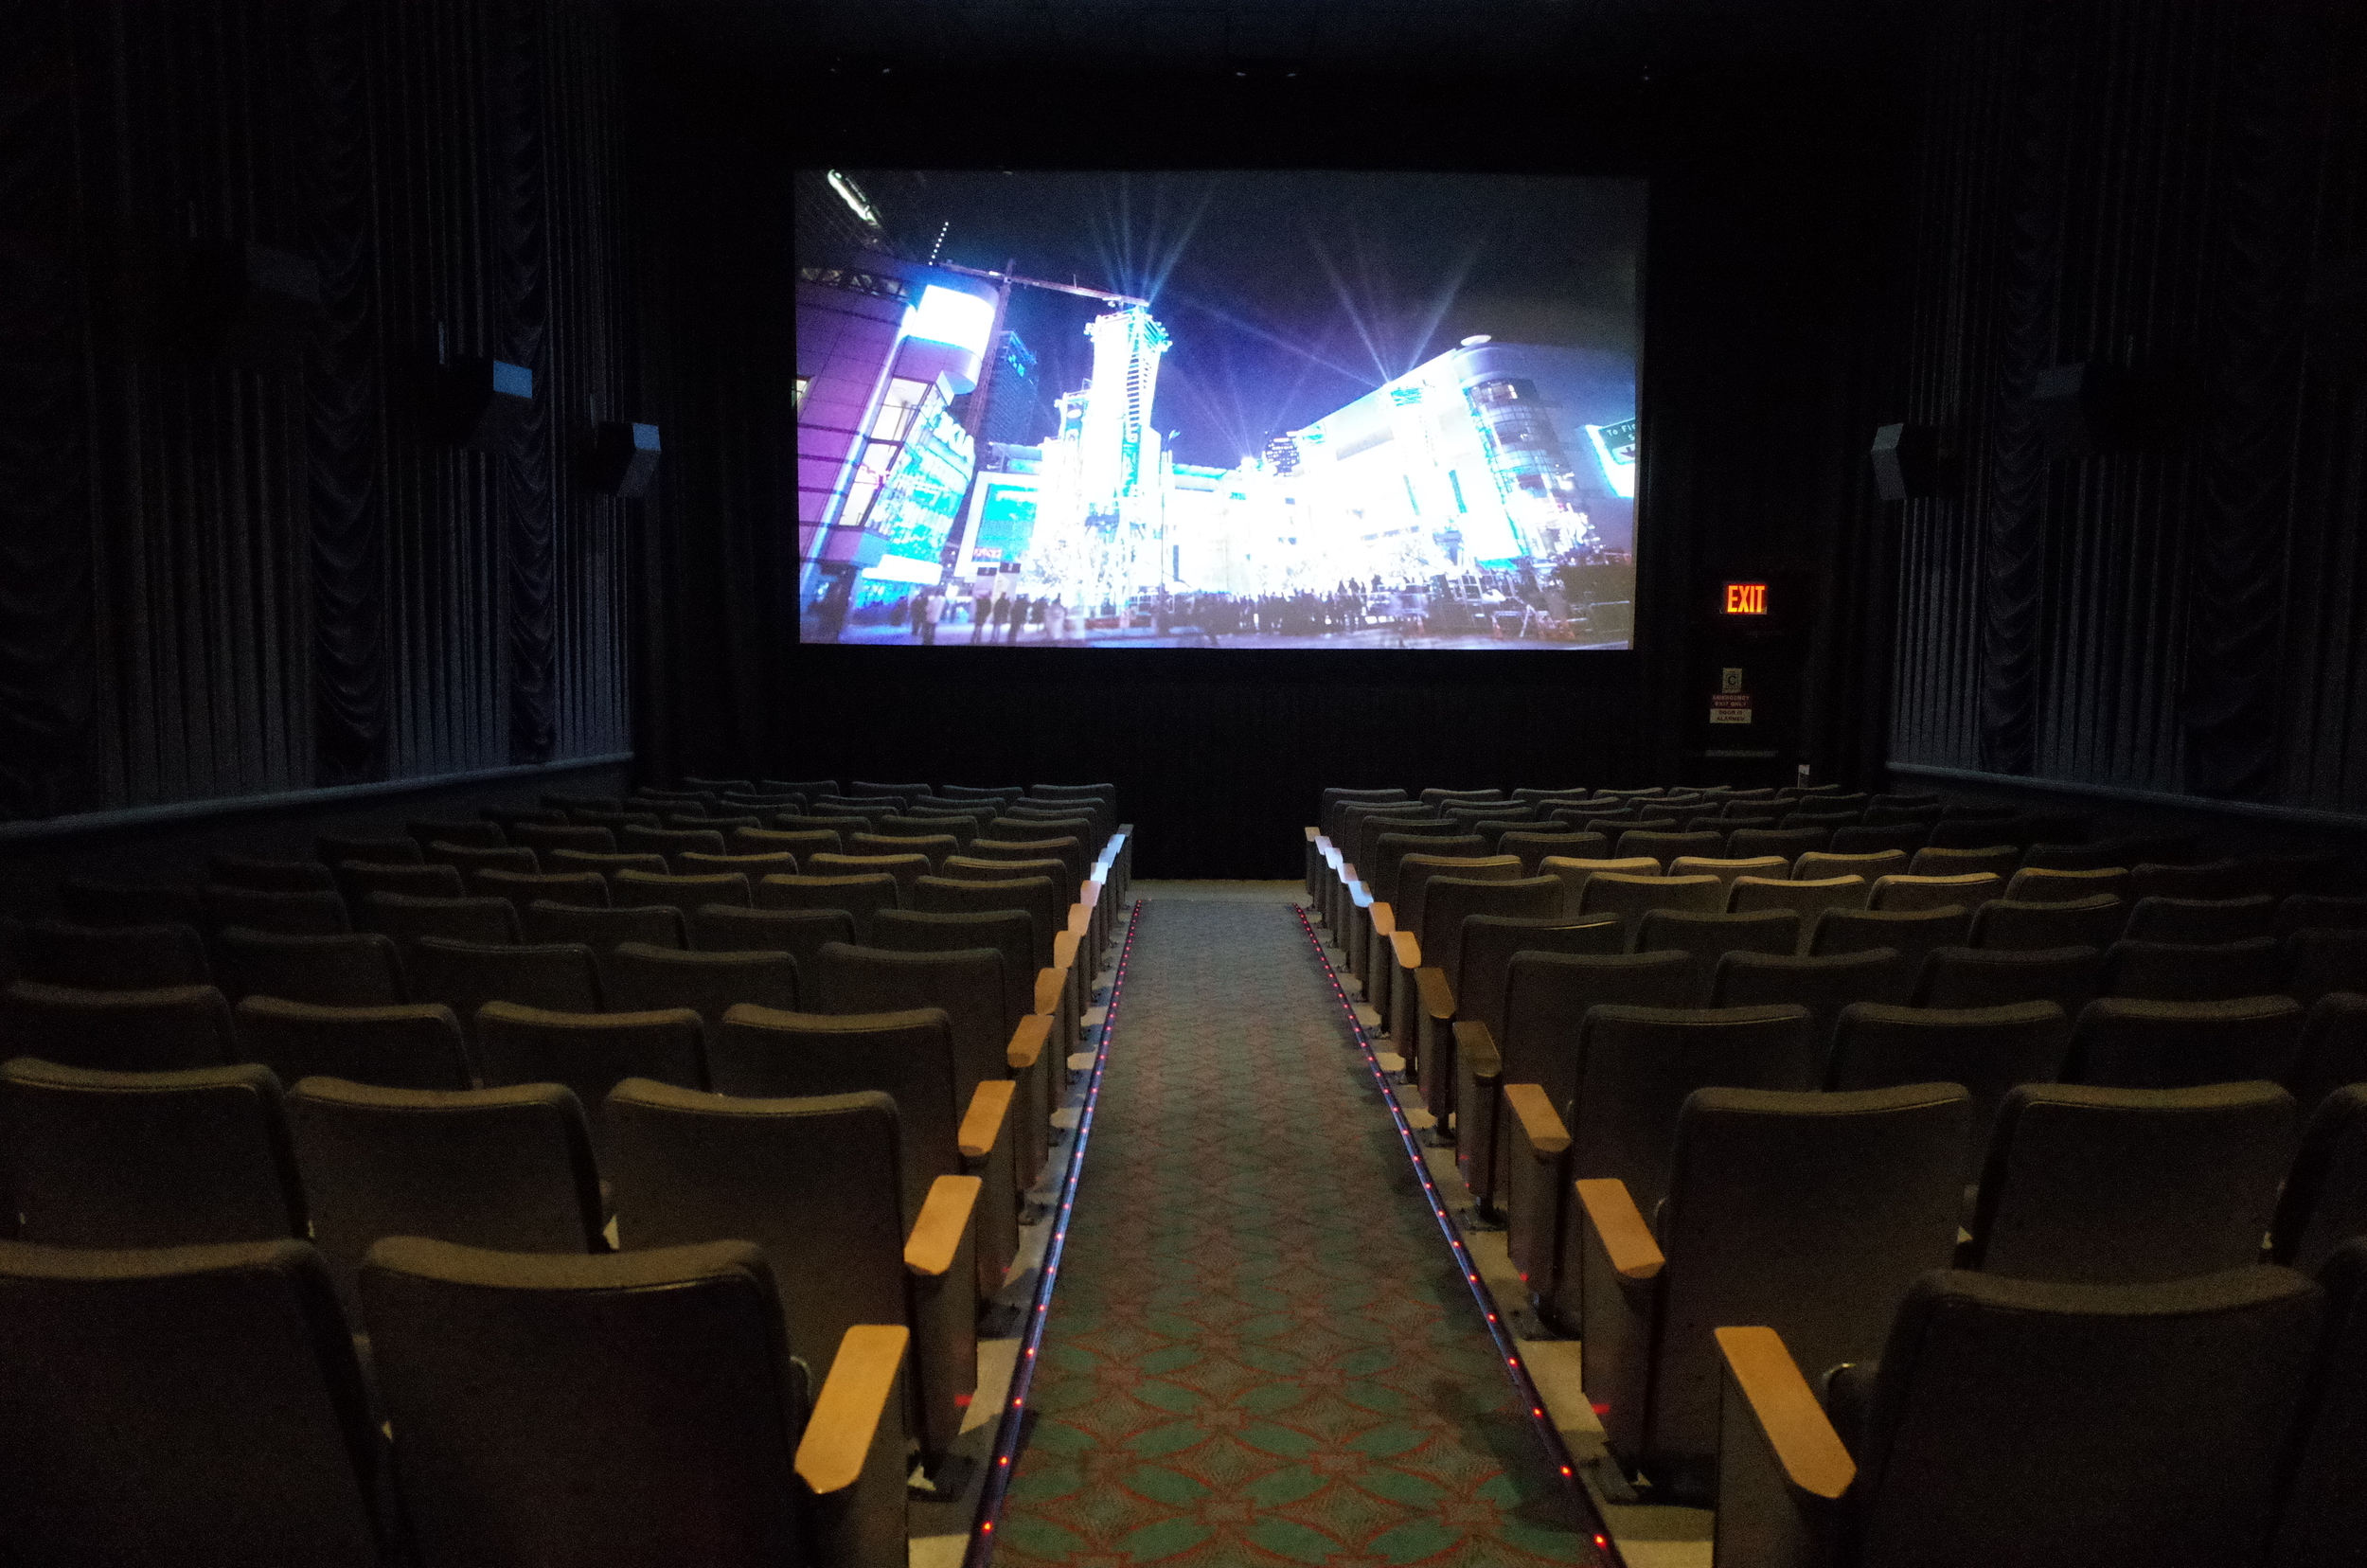 Top floor of the 3rd avenue AMC. How long could someone live up here before anyone noticed?